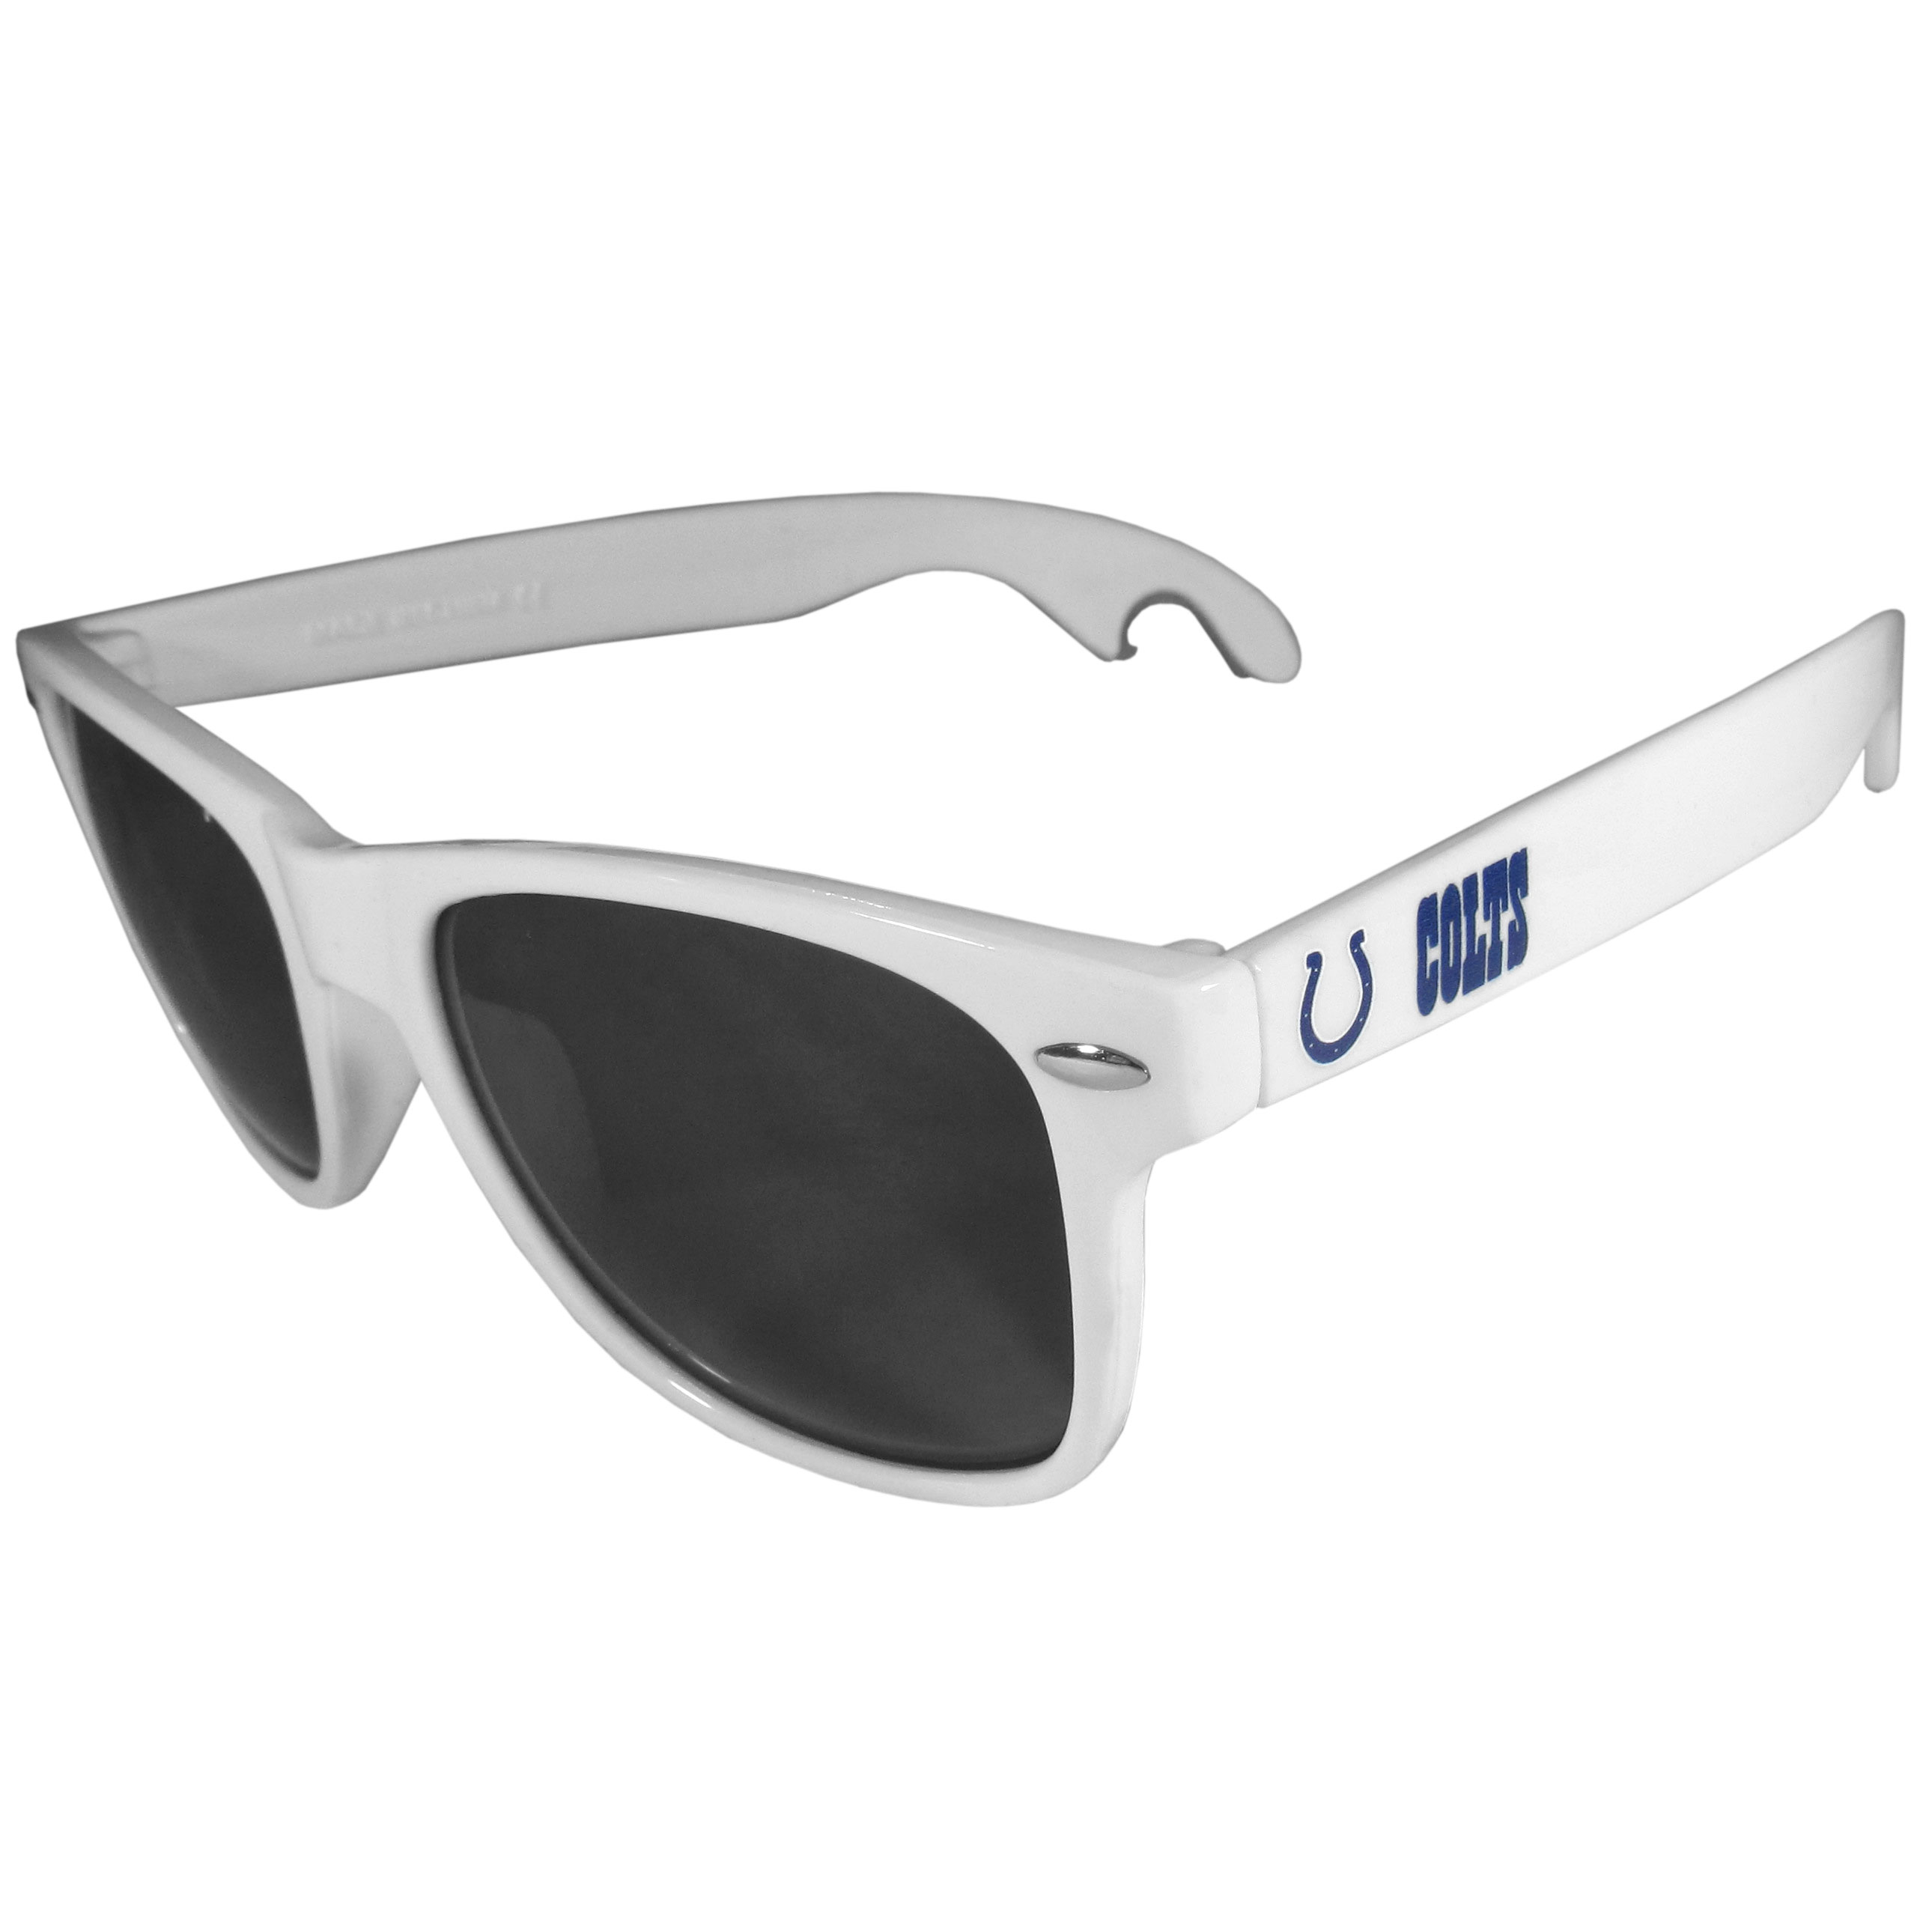 Indianapolis Colts Beachfarer Bottle Opener Sunglasses, White - Seriously, these sunglasses open bottles! Keep the party going with these amazing Indianapolis Colts bottle opener sunglasses. The stylish retro frames feature team designs on the arms and functional bottle openers on the end of the arms. Whether you are at the beach or having a backyard BBQ on game day, these shades will keep your eyes protected with 100% UVA/UVB protection and keep you hydrated with the handy bottle opener arms.